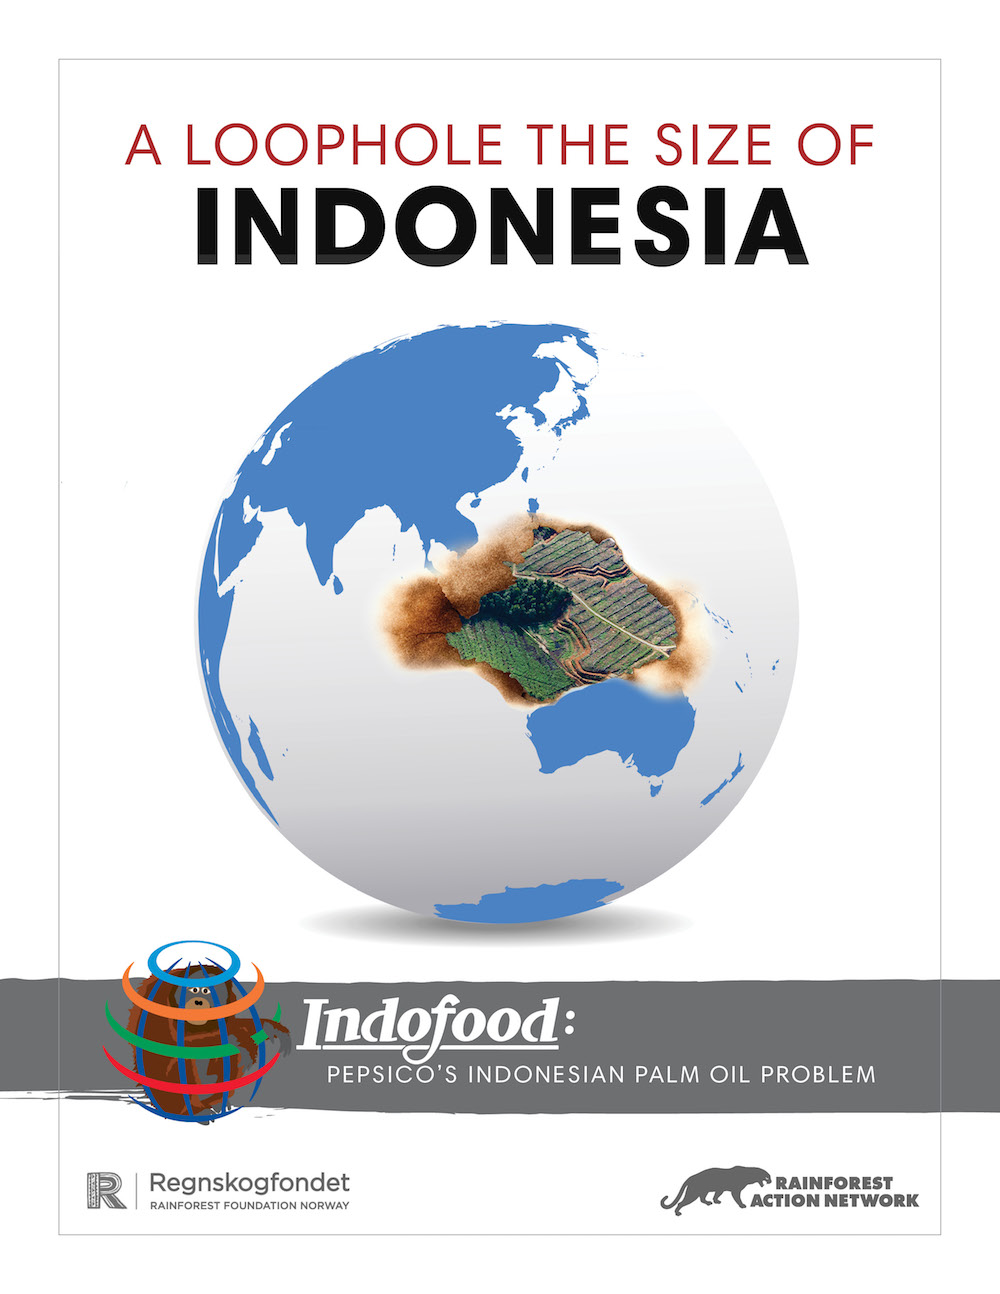 RAN_Loophole_The_Size_of_Indonesia_cover.jpg